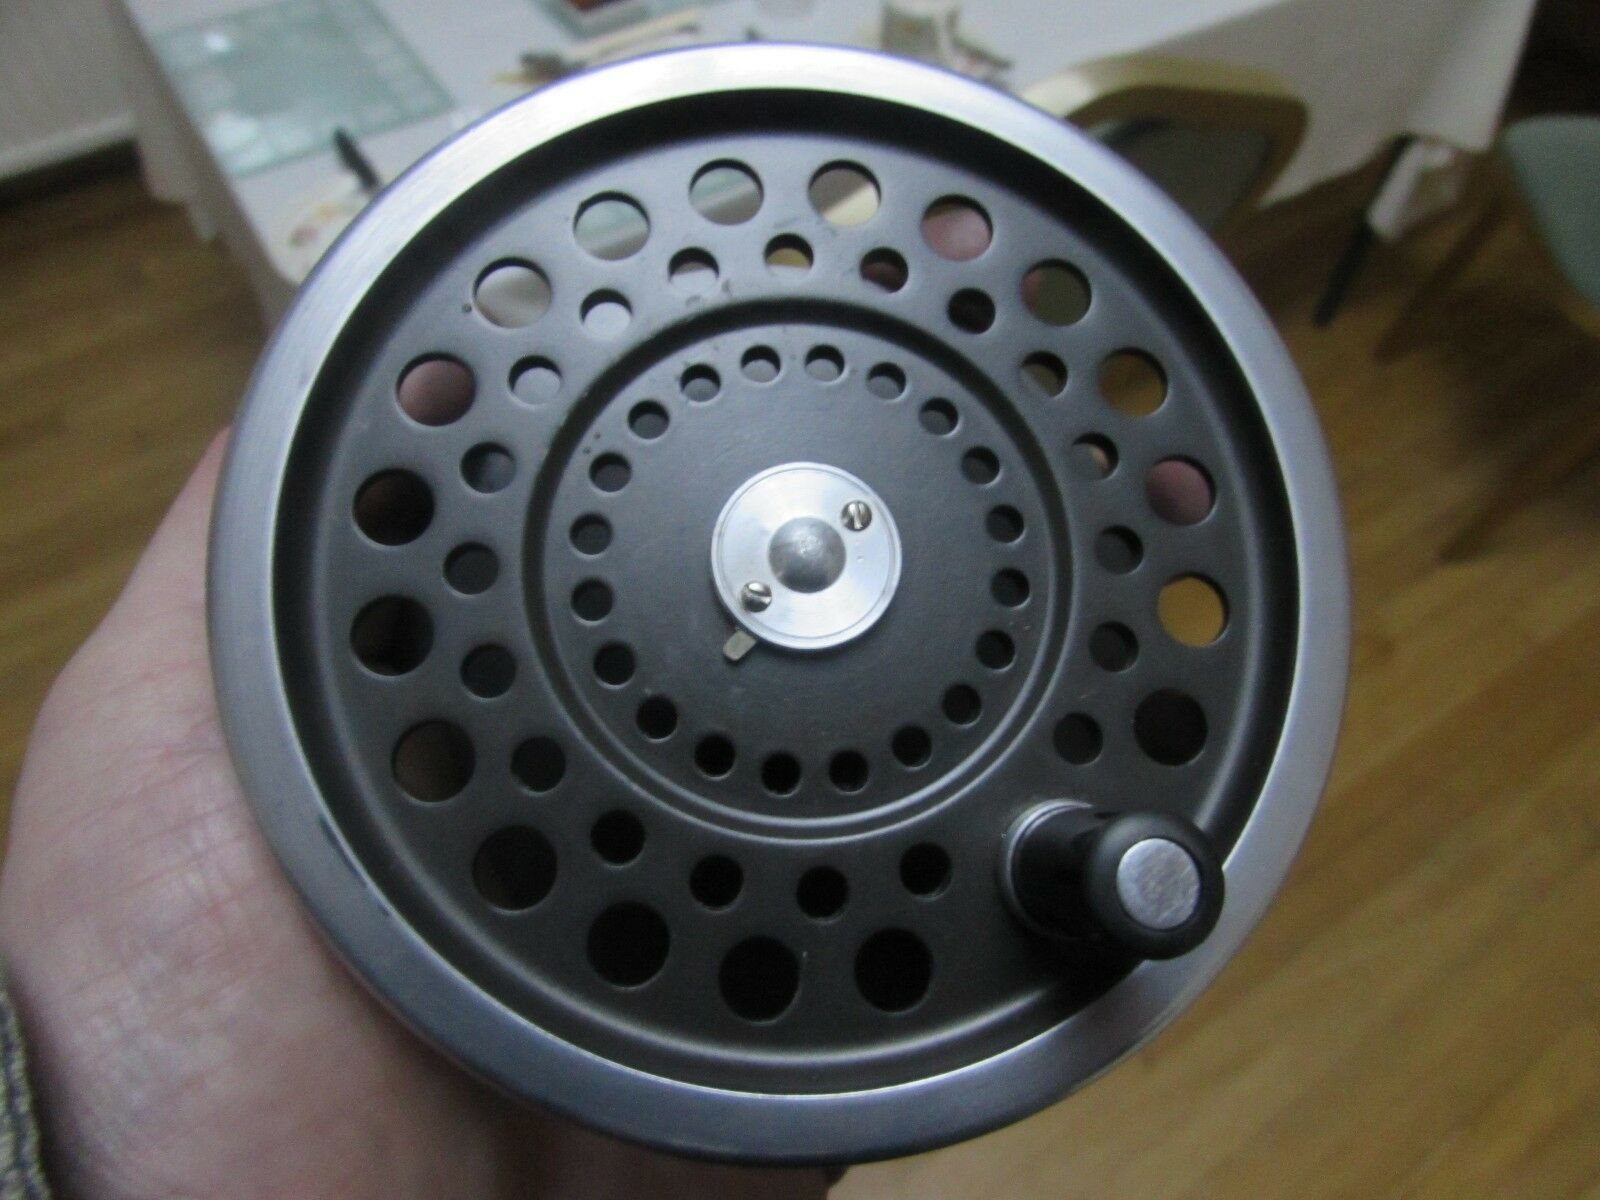 Excellent vintage hardy marquis no. 2 spool for salmon fly fishing reel ,.,.,